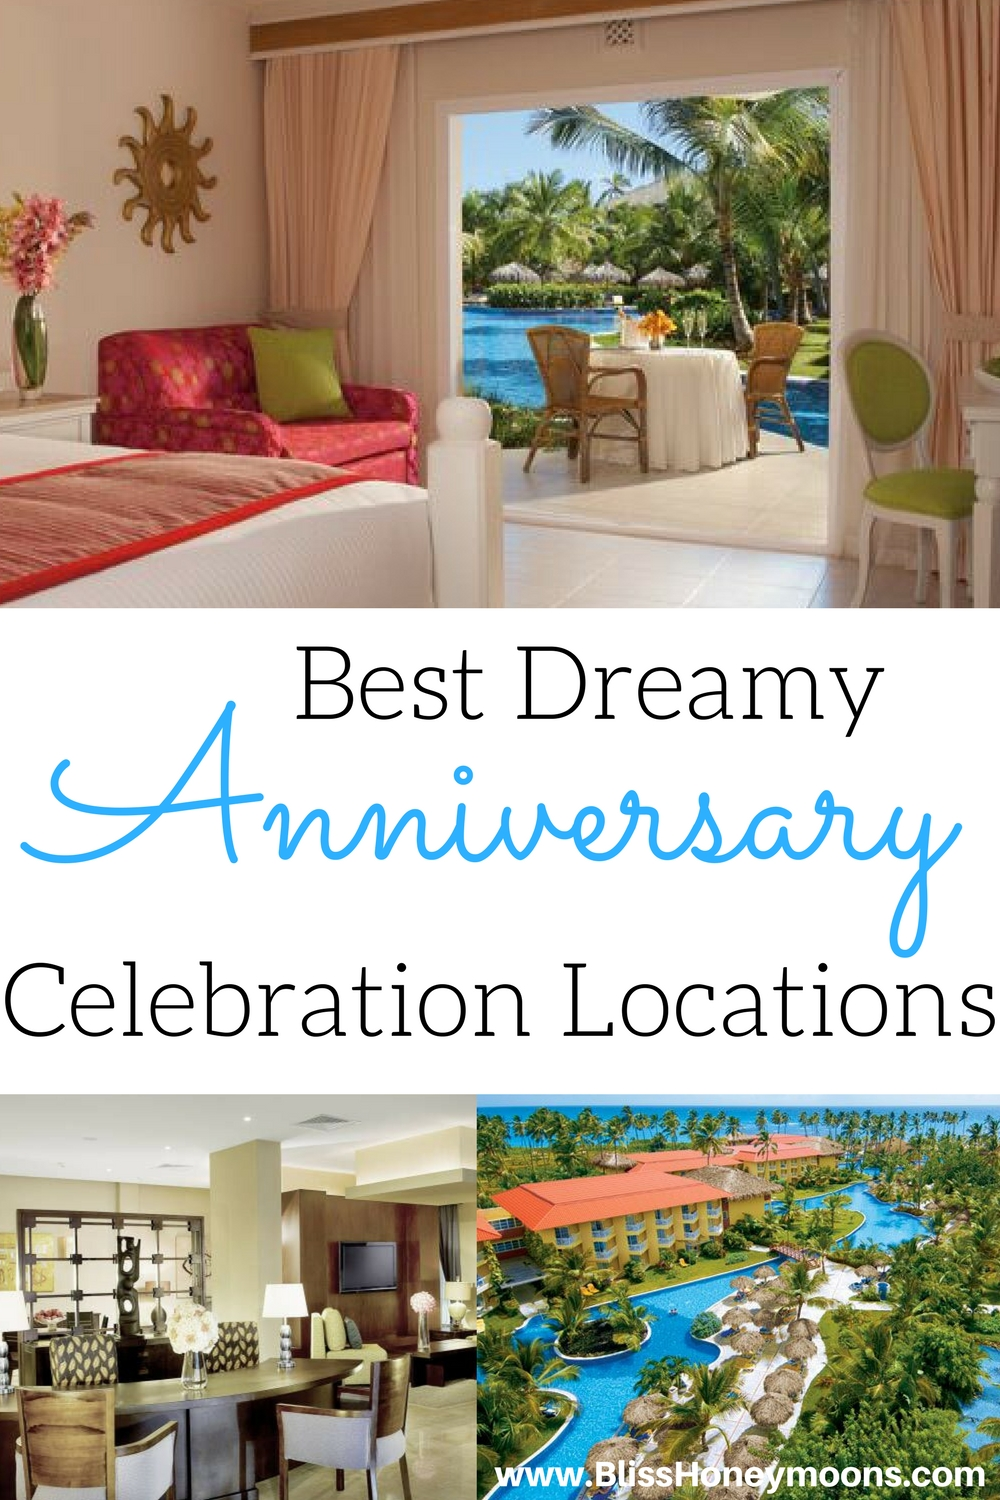 Best anniversary celebration Dreams Punta Cana resort, top anniversary trip destinations, Dreams Punta Cana review, anniversary getaways